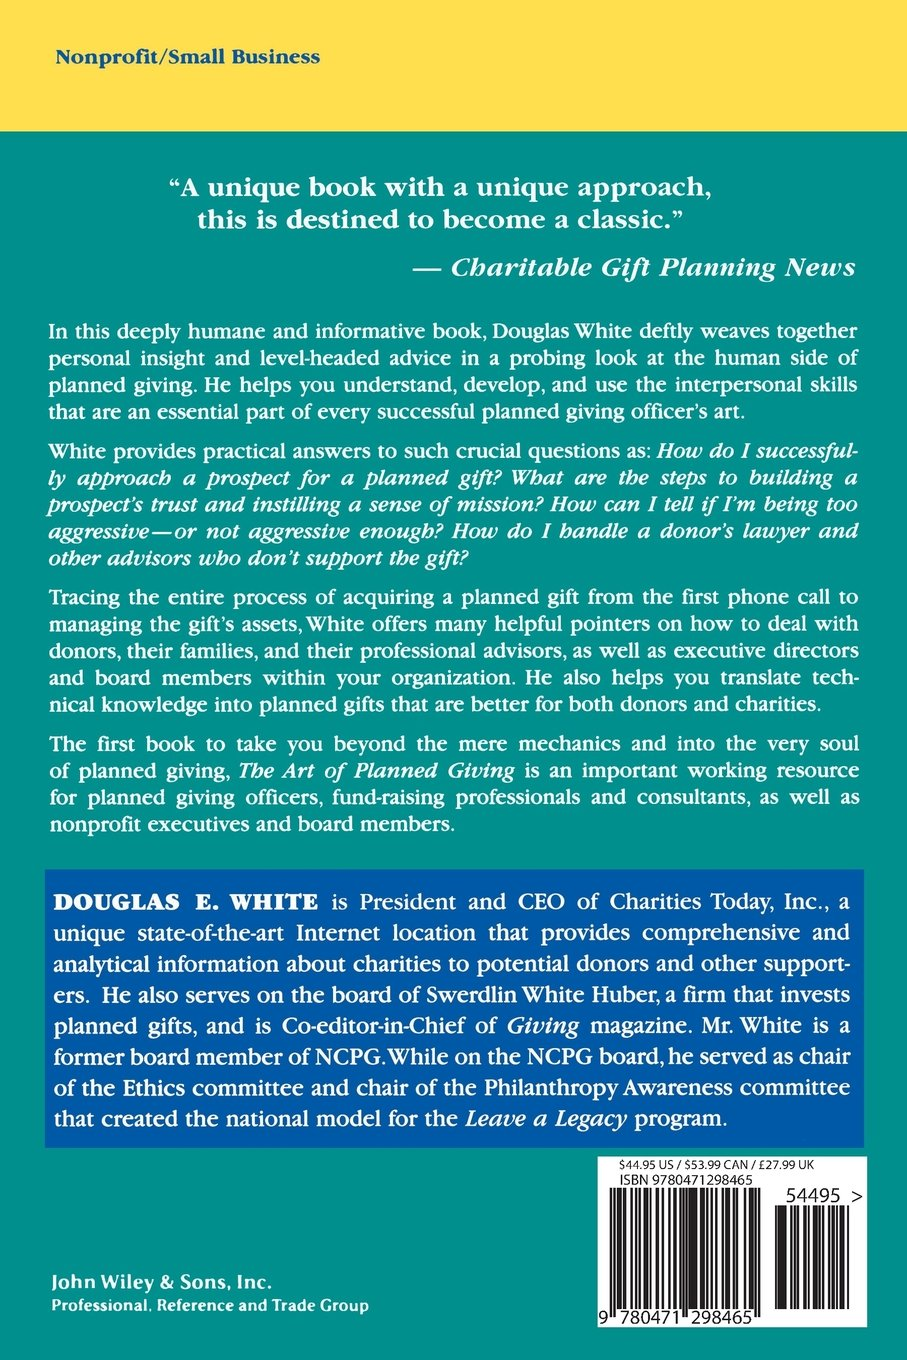 The art of planned giving understanding donors and the culture of the art of planned giving understanding donors and the culture of giving douglas e white 9780471298465 amazon books negle Gallery